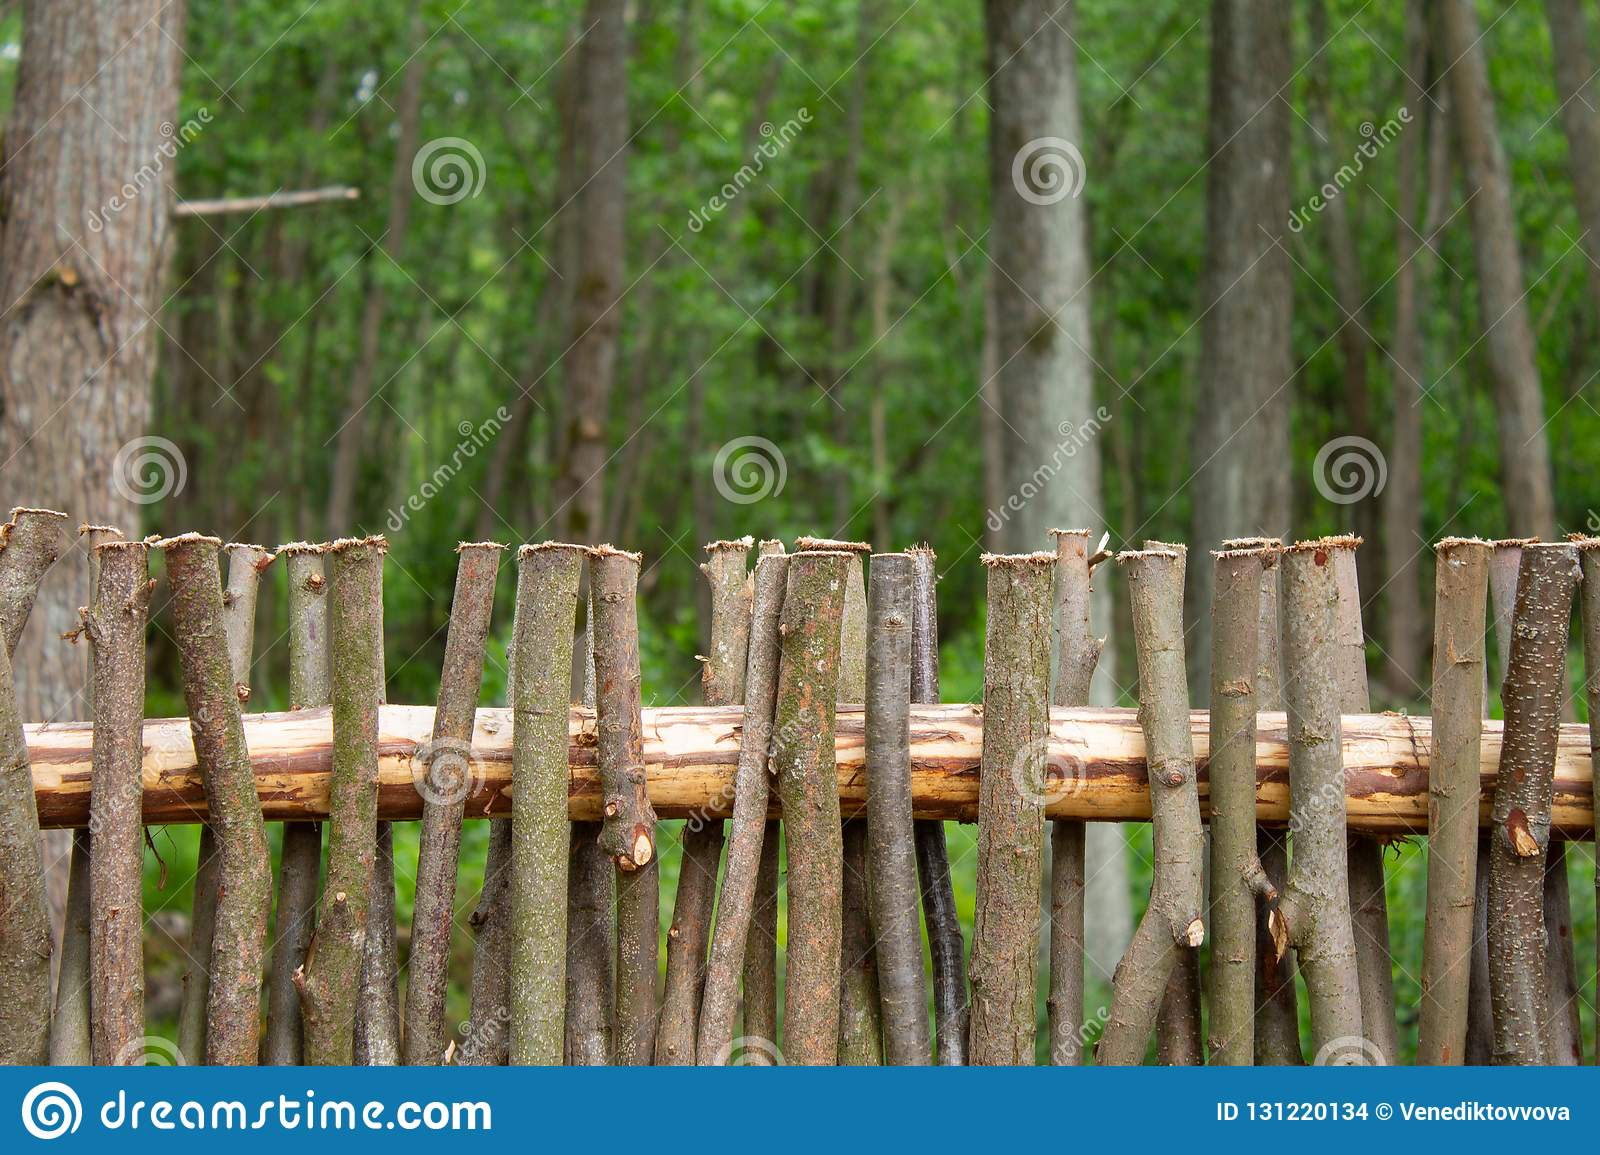 Weaving From Willow Branches Fence From Tree Branches Stock Photo Image Of Backdrop Bamboo 131220134